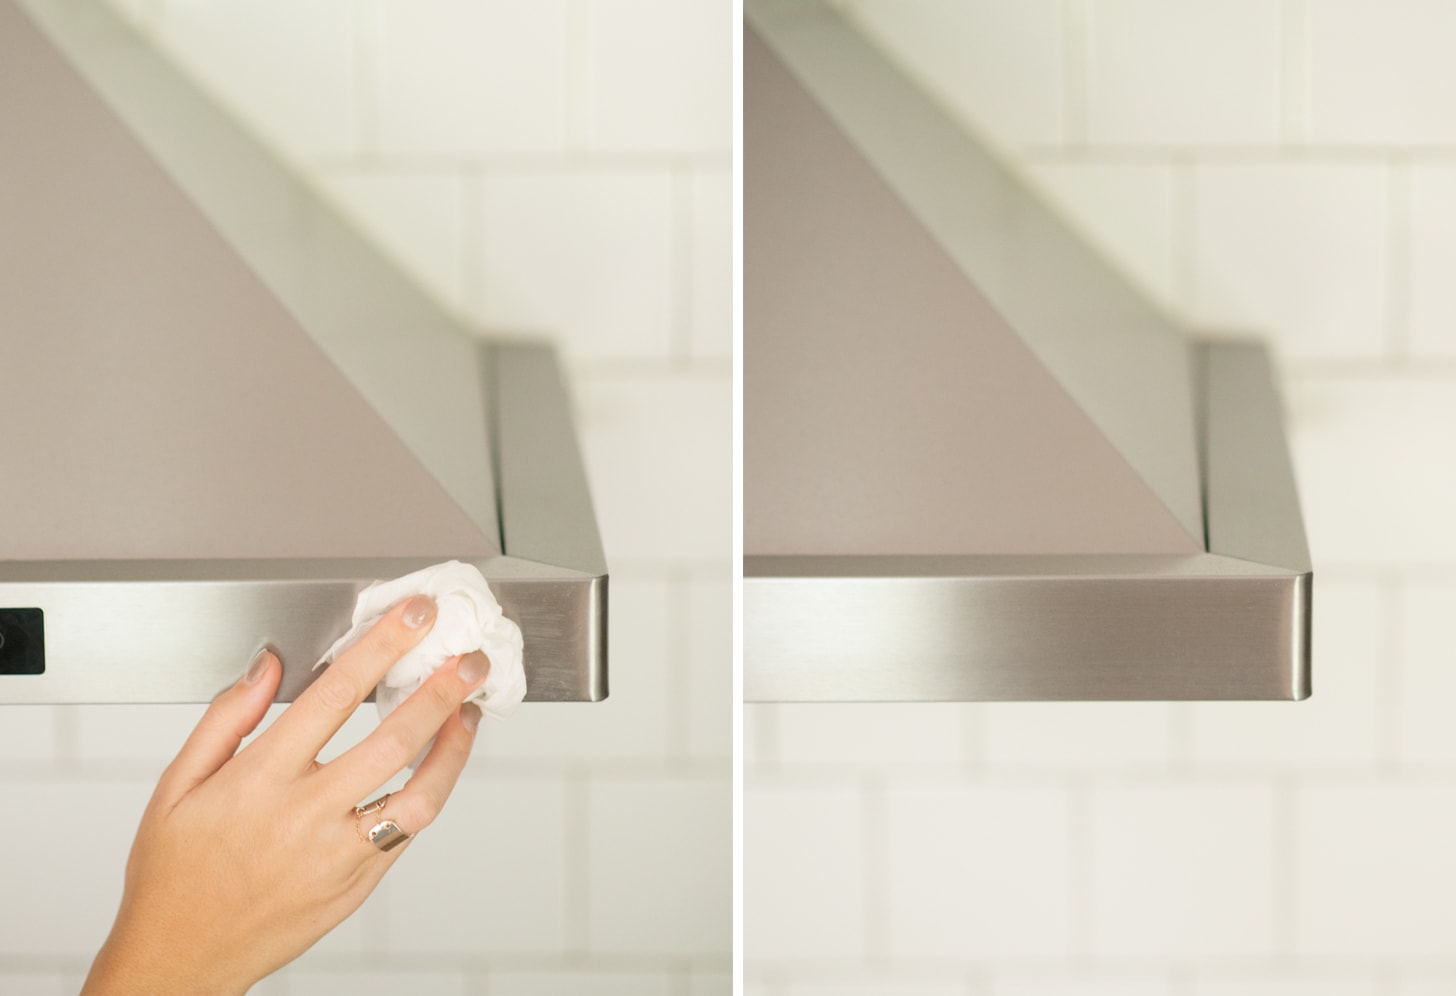 Cleaning the rangehood with Stainless steel products from Weiman